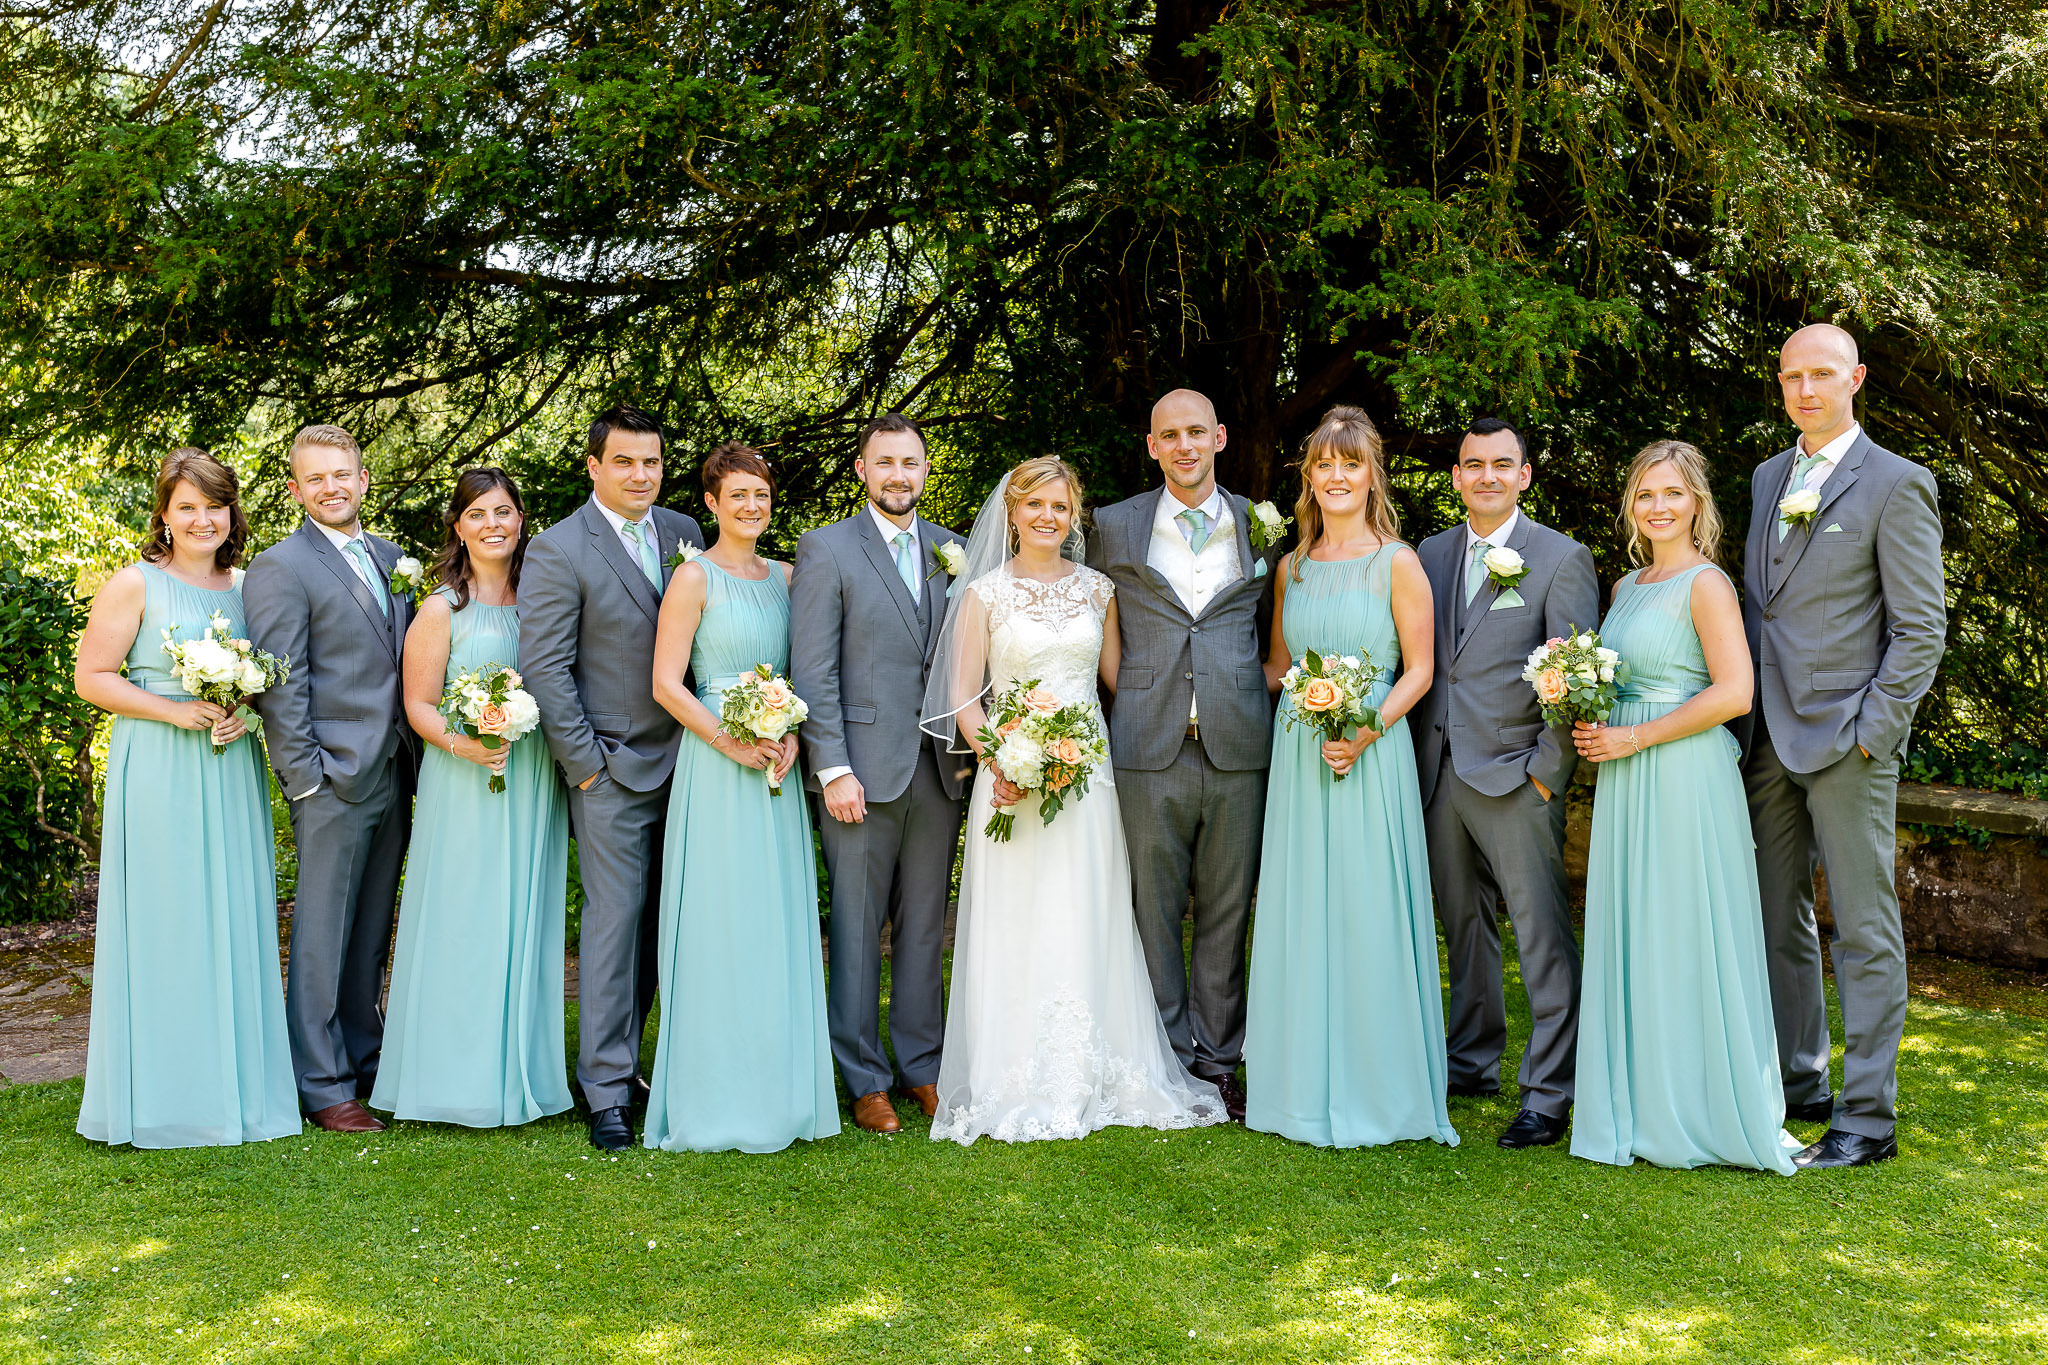 Art by Design - Caer Llan Wedding Photography - Bridal Party